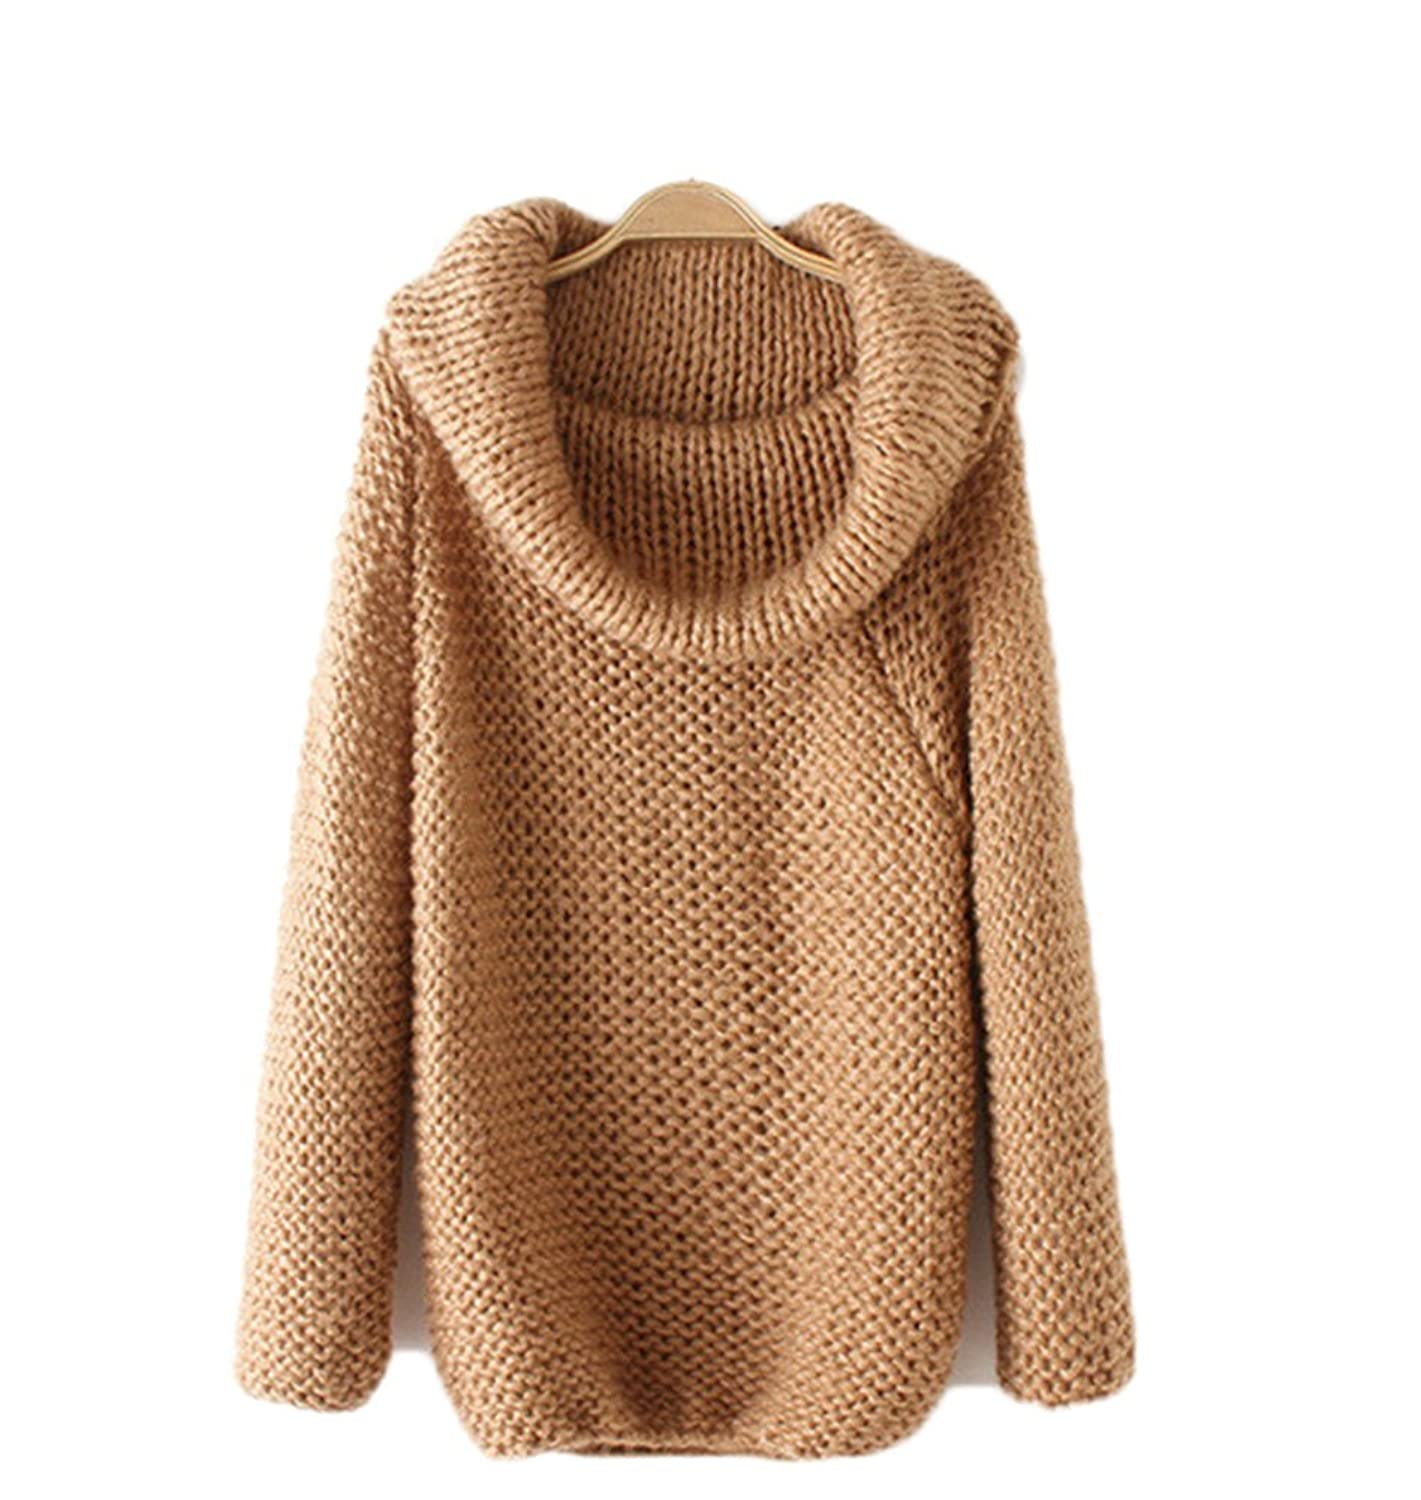 D.Catman Womens Casual Autumn Wide-lapel Loose Knit Batwing Sleeve Solid Sweater